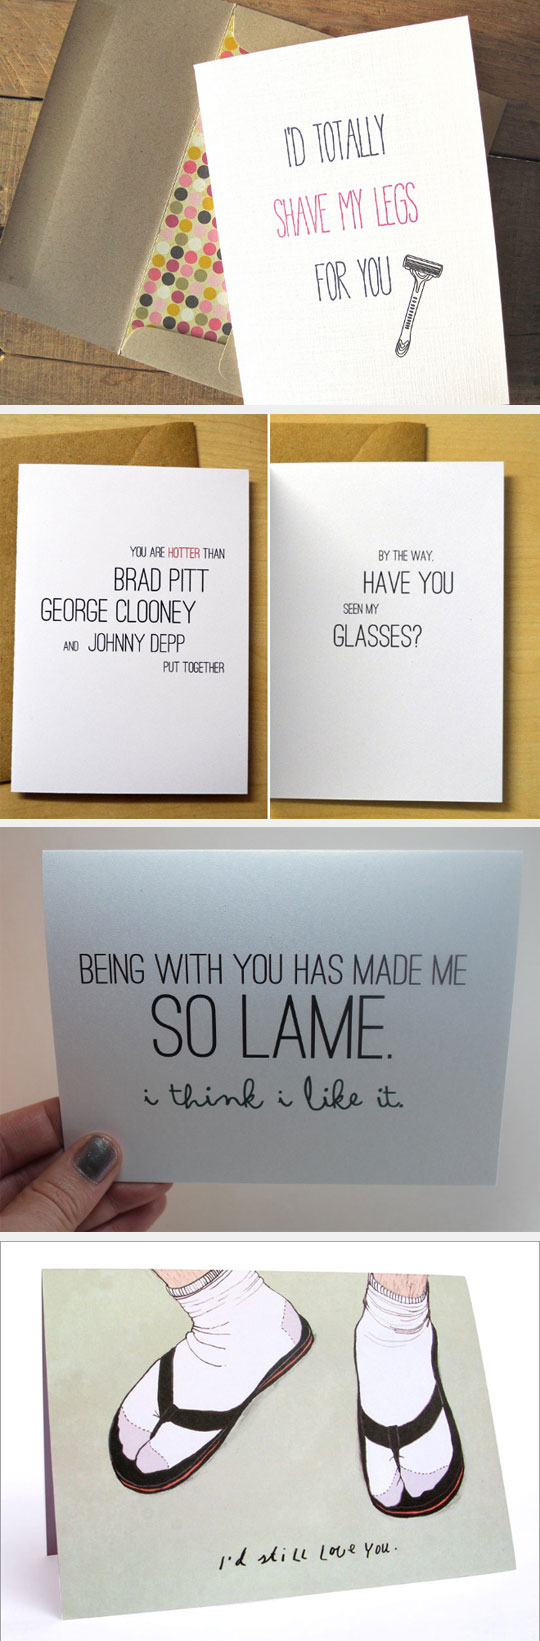 funny-romantic-greeting-cards-weird